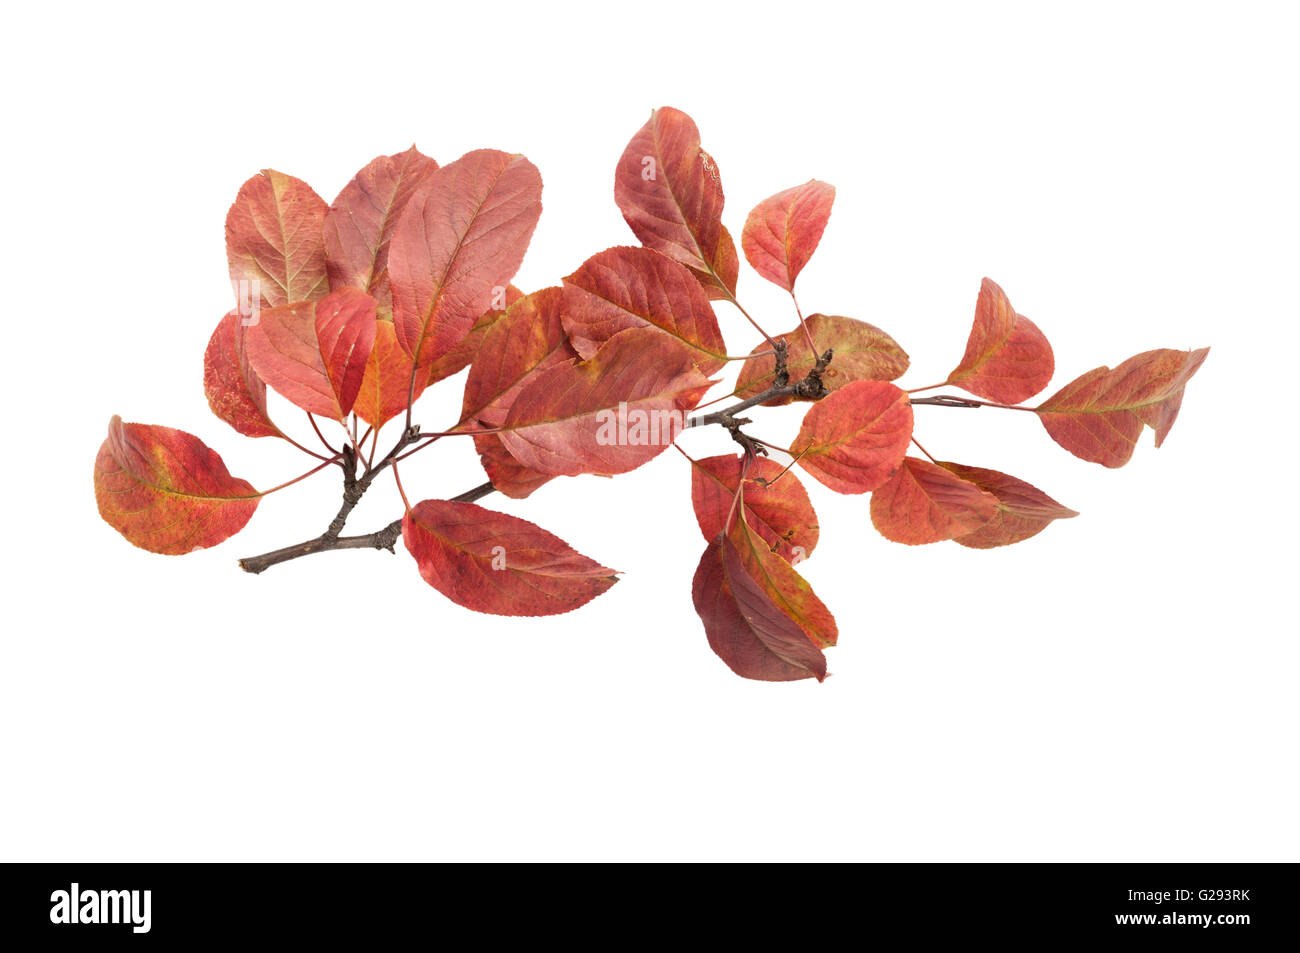 Autumn twig with red leaves isolated on white background - Stock Image